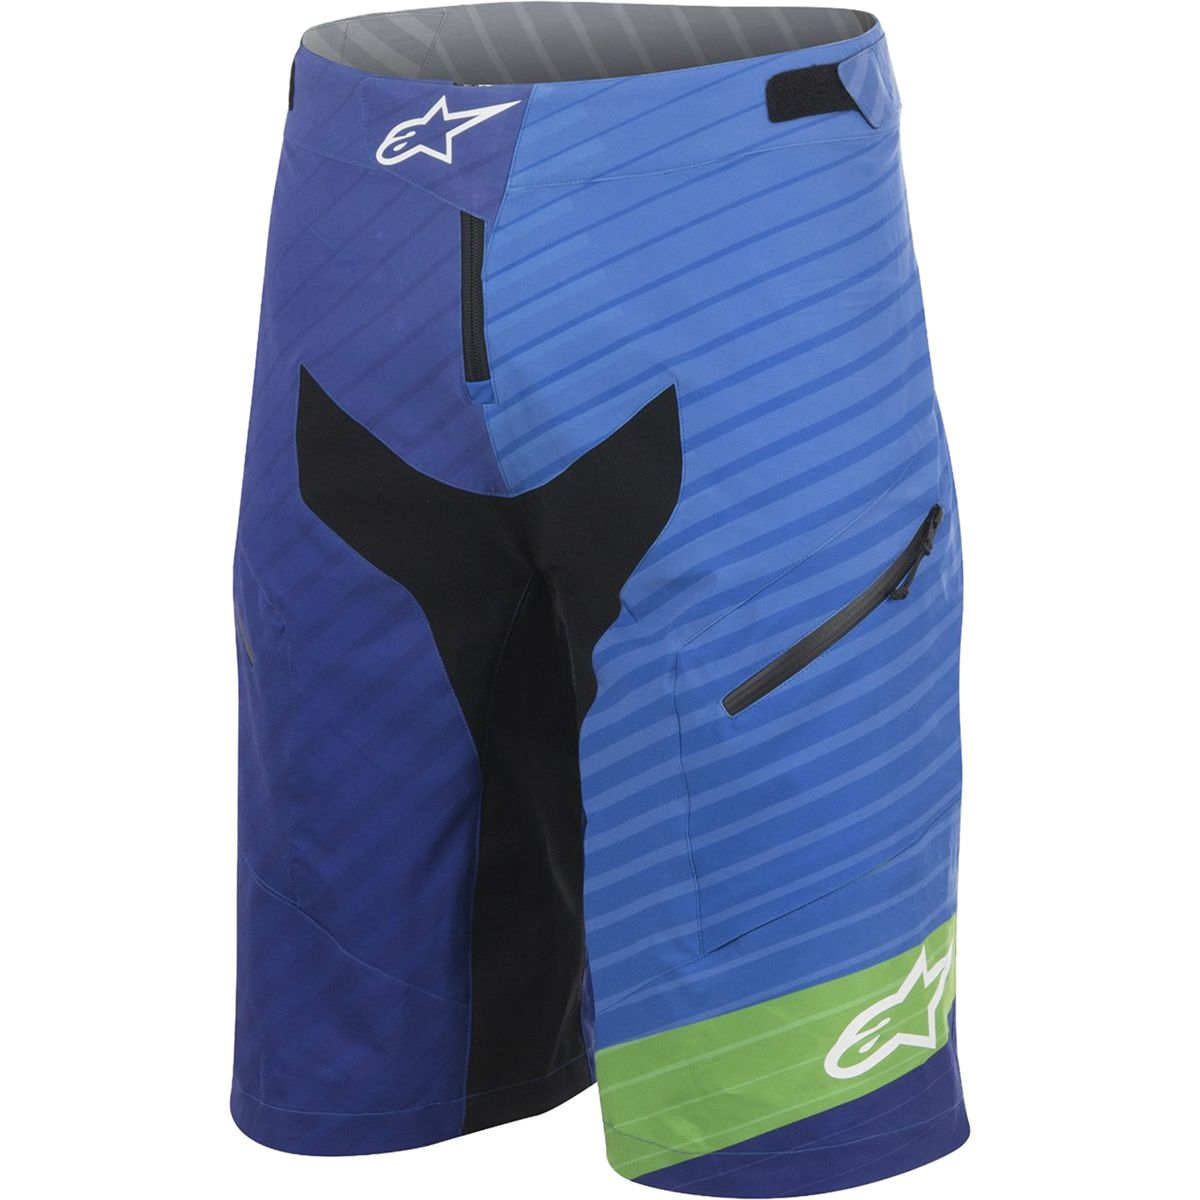 Alpinestars Depth Shorts Men's